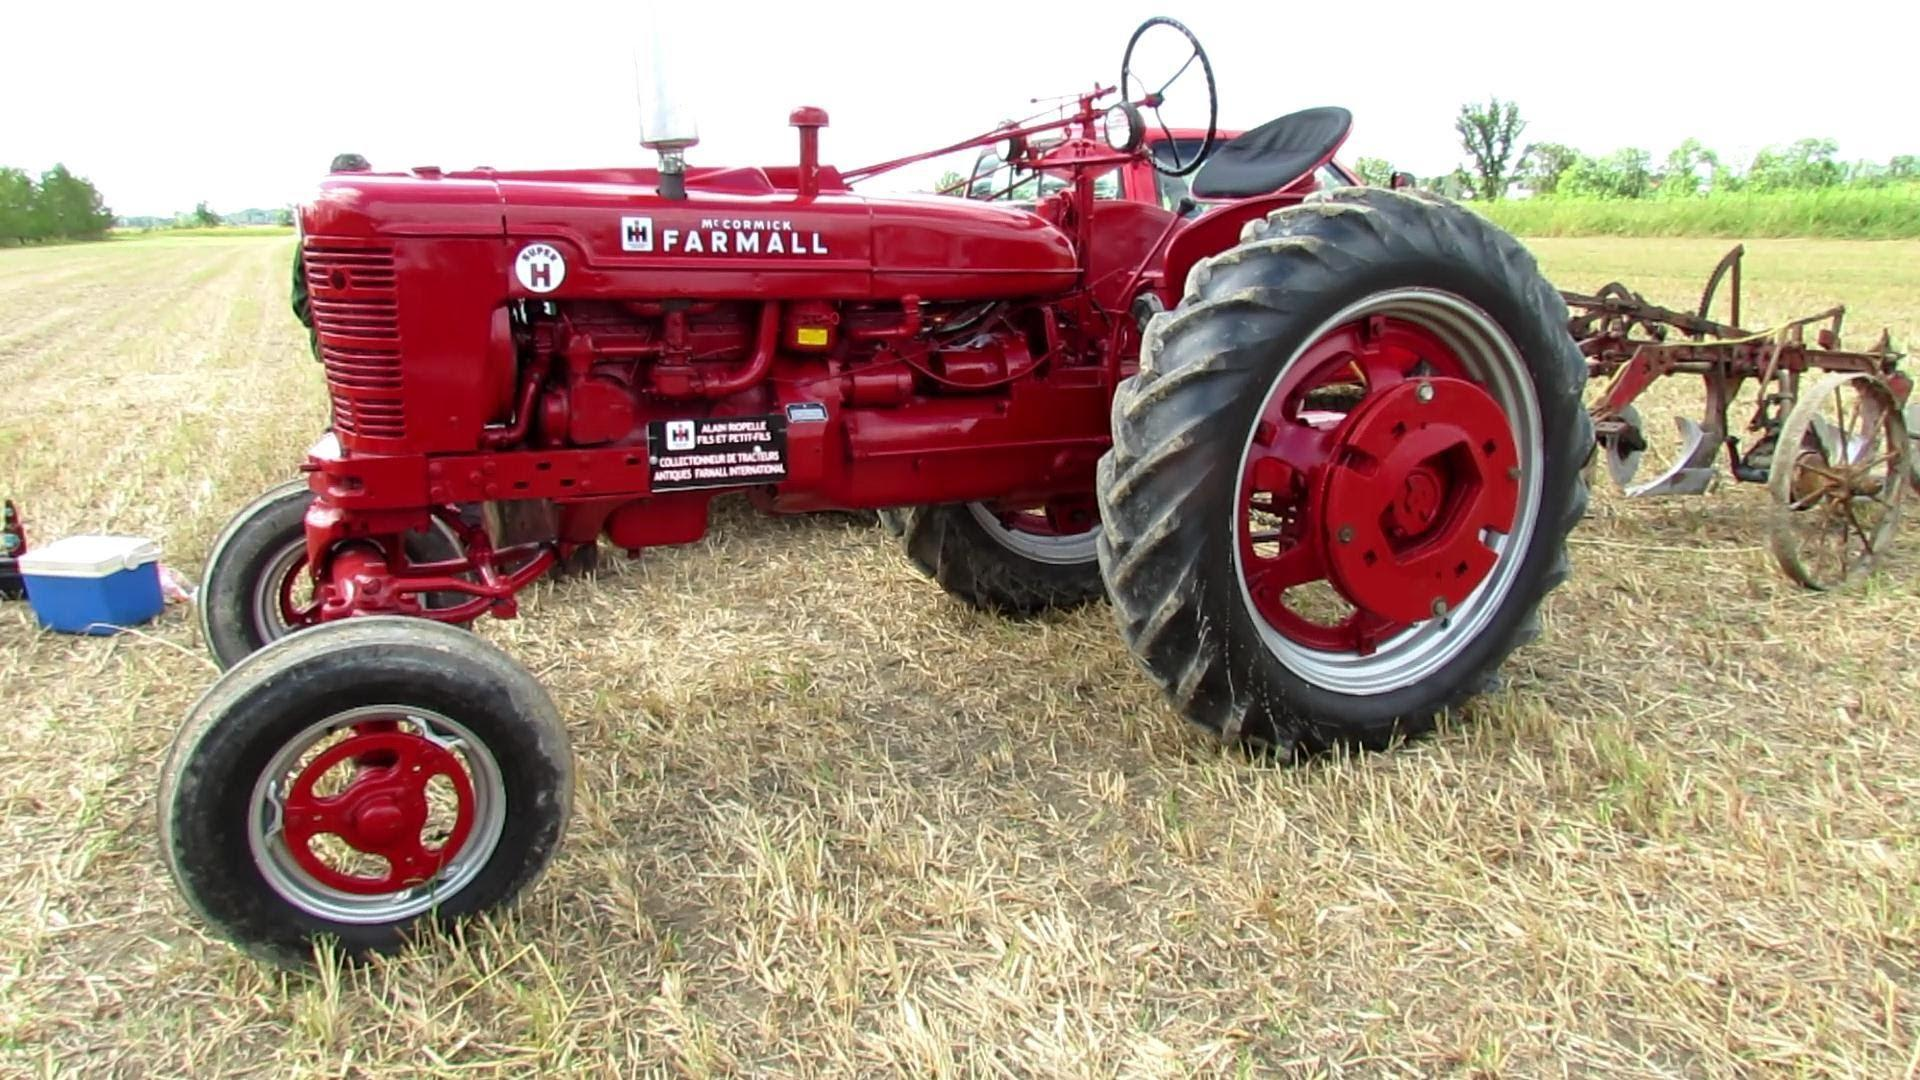 Farmall Tractor Hd Wallpapers